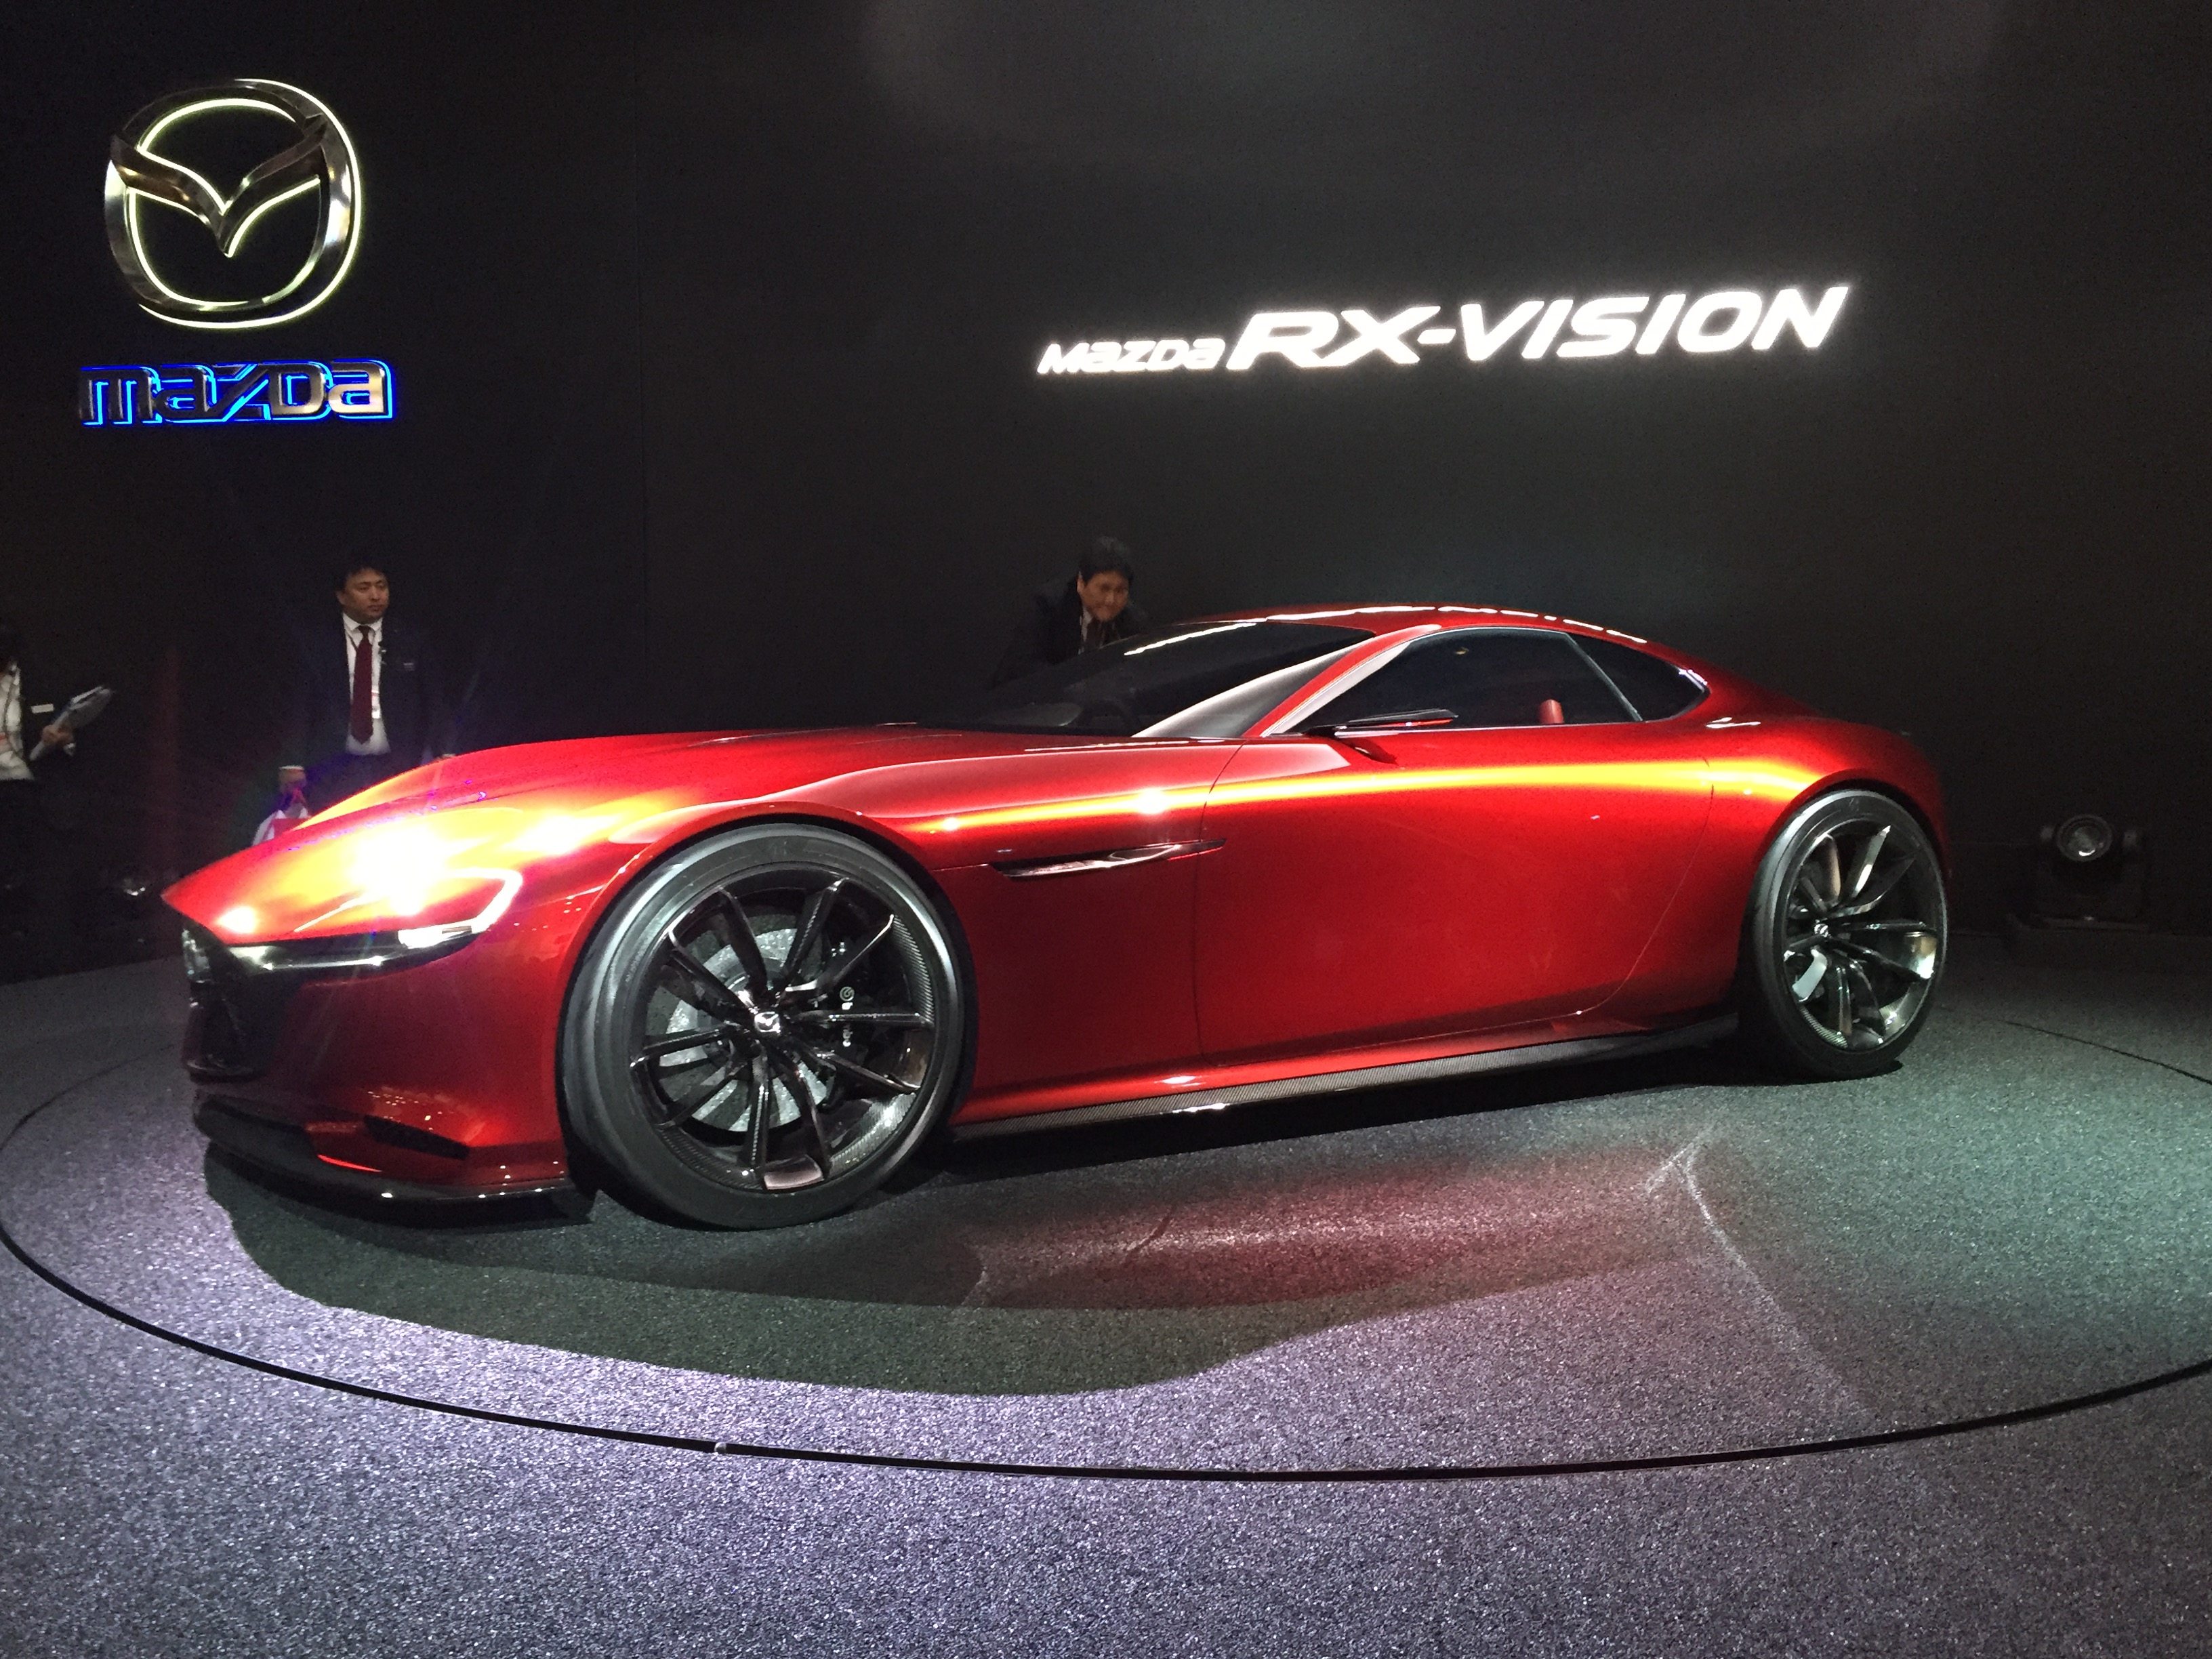 2016 nissan 370z new fca recall mazda rx vision what s for Modern motors used cars